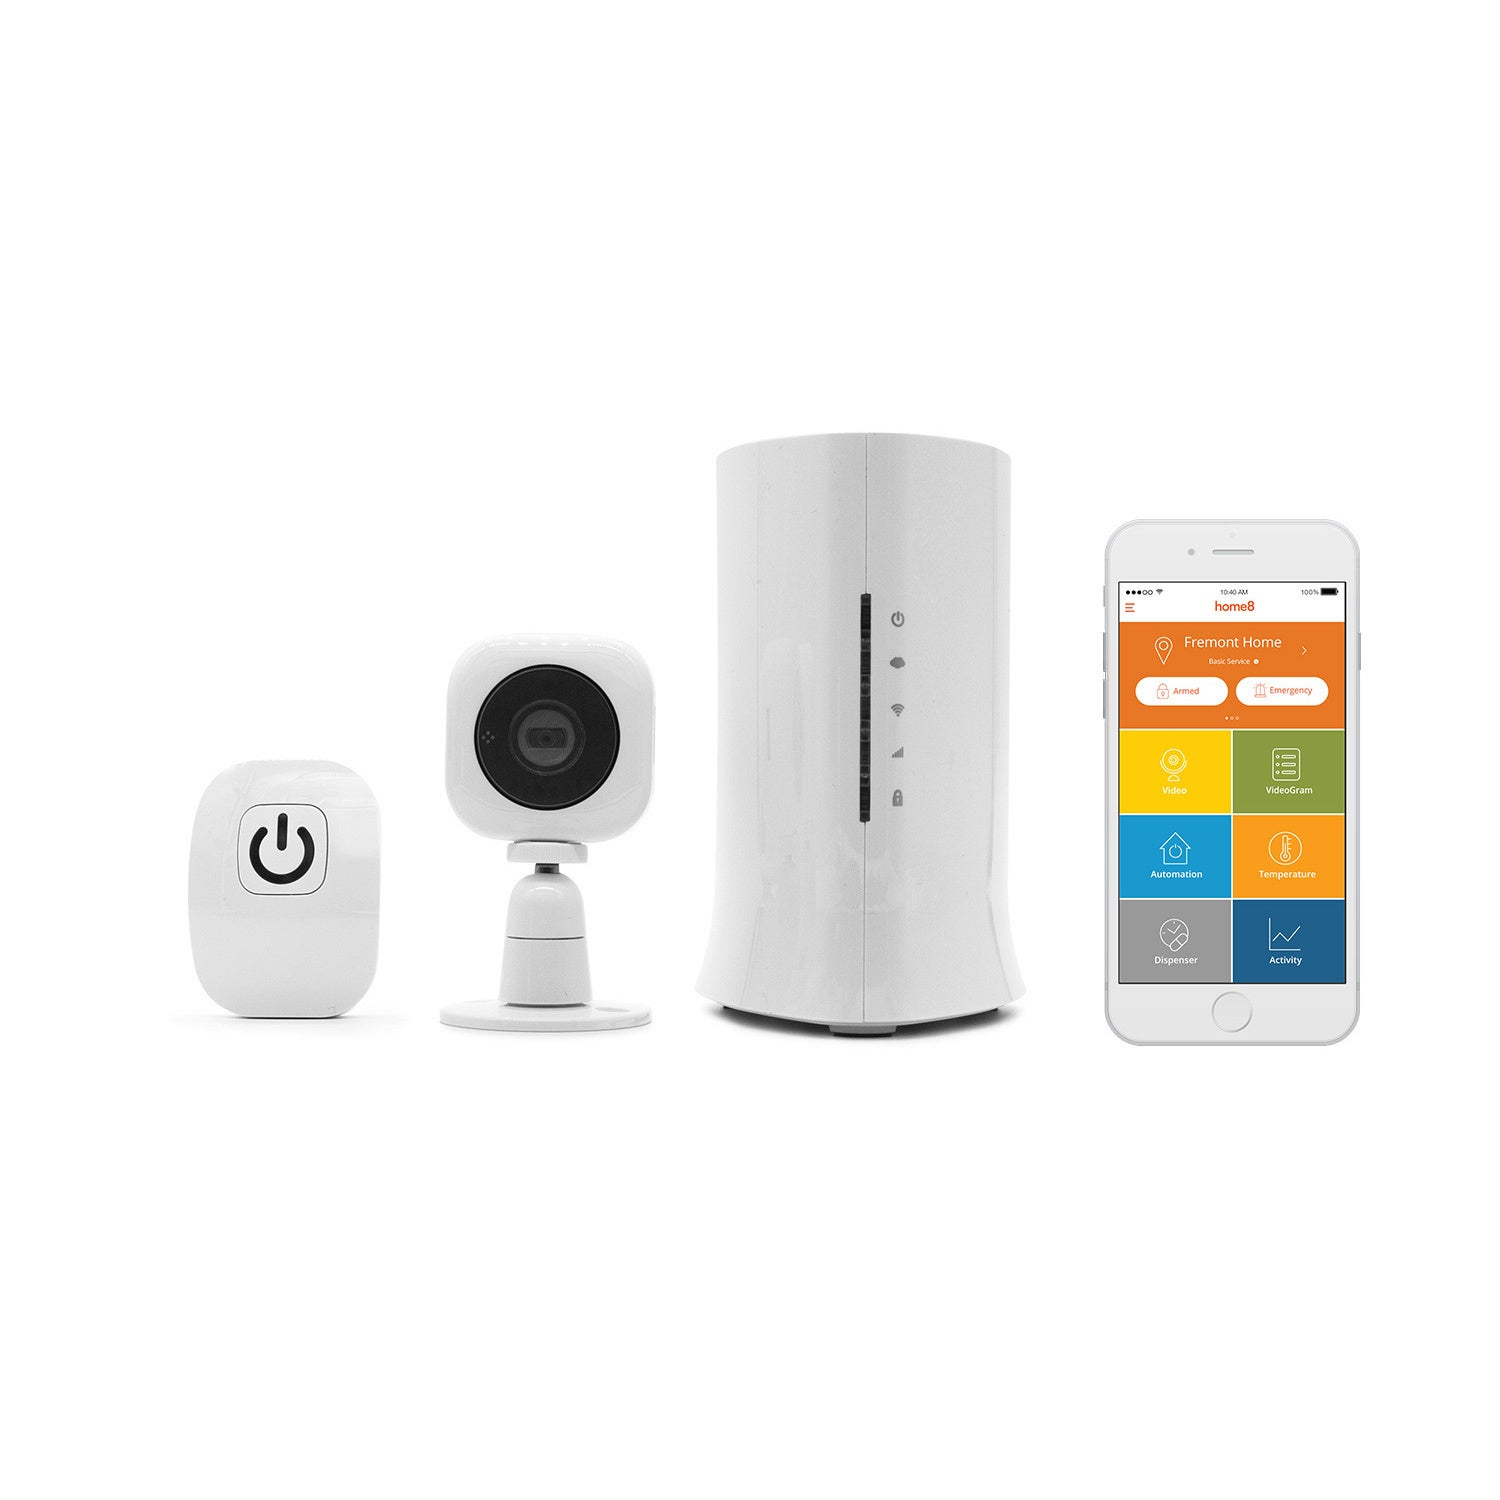 Home8 Video-Verified Smart Garage Open/Close Ultra-Secure Smartphone Compatible Starter Kit with Amazon Alexa Integration